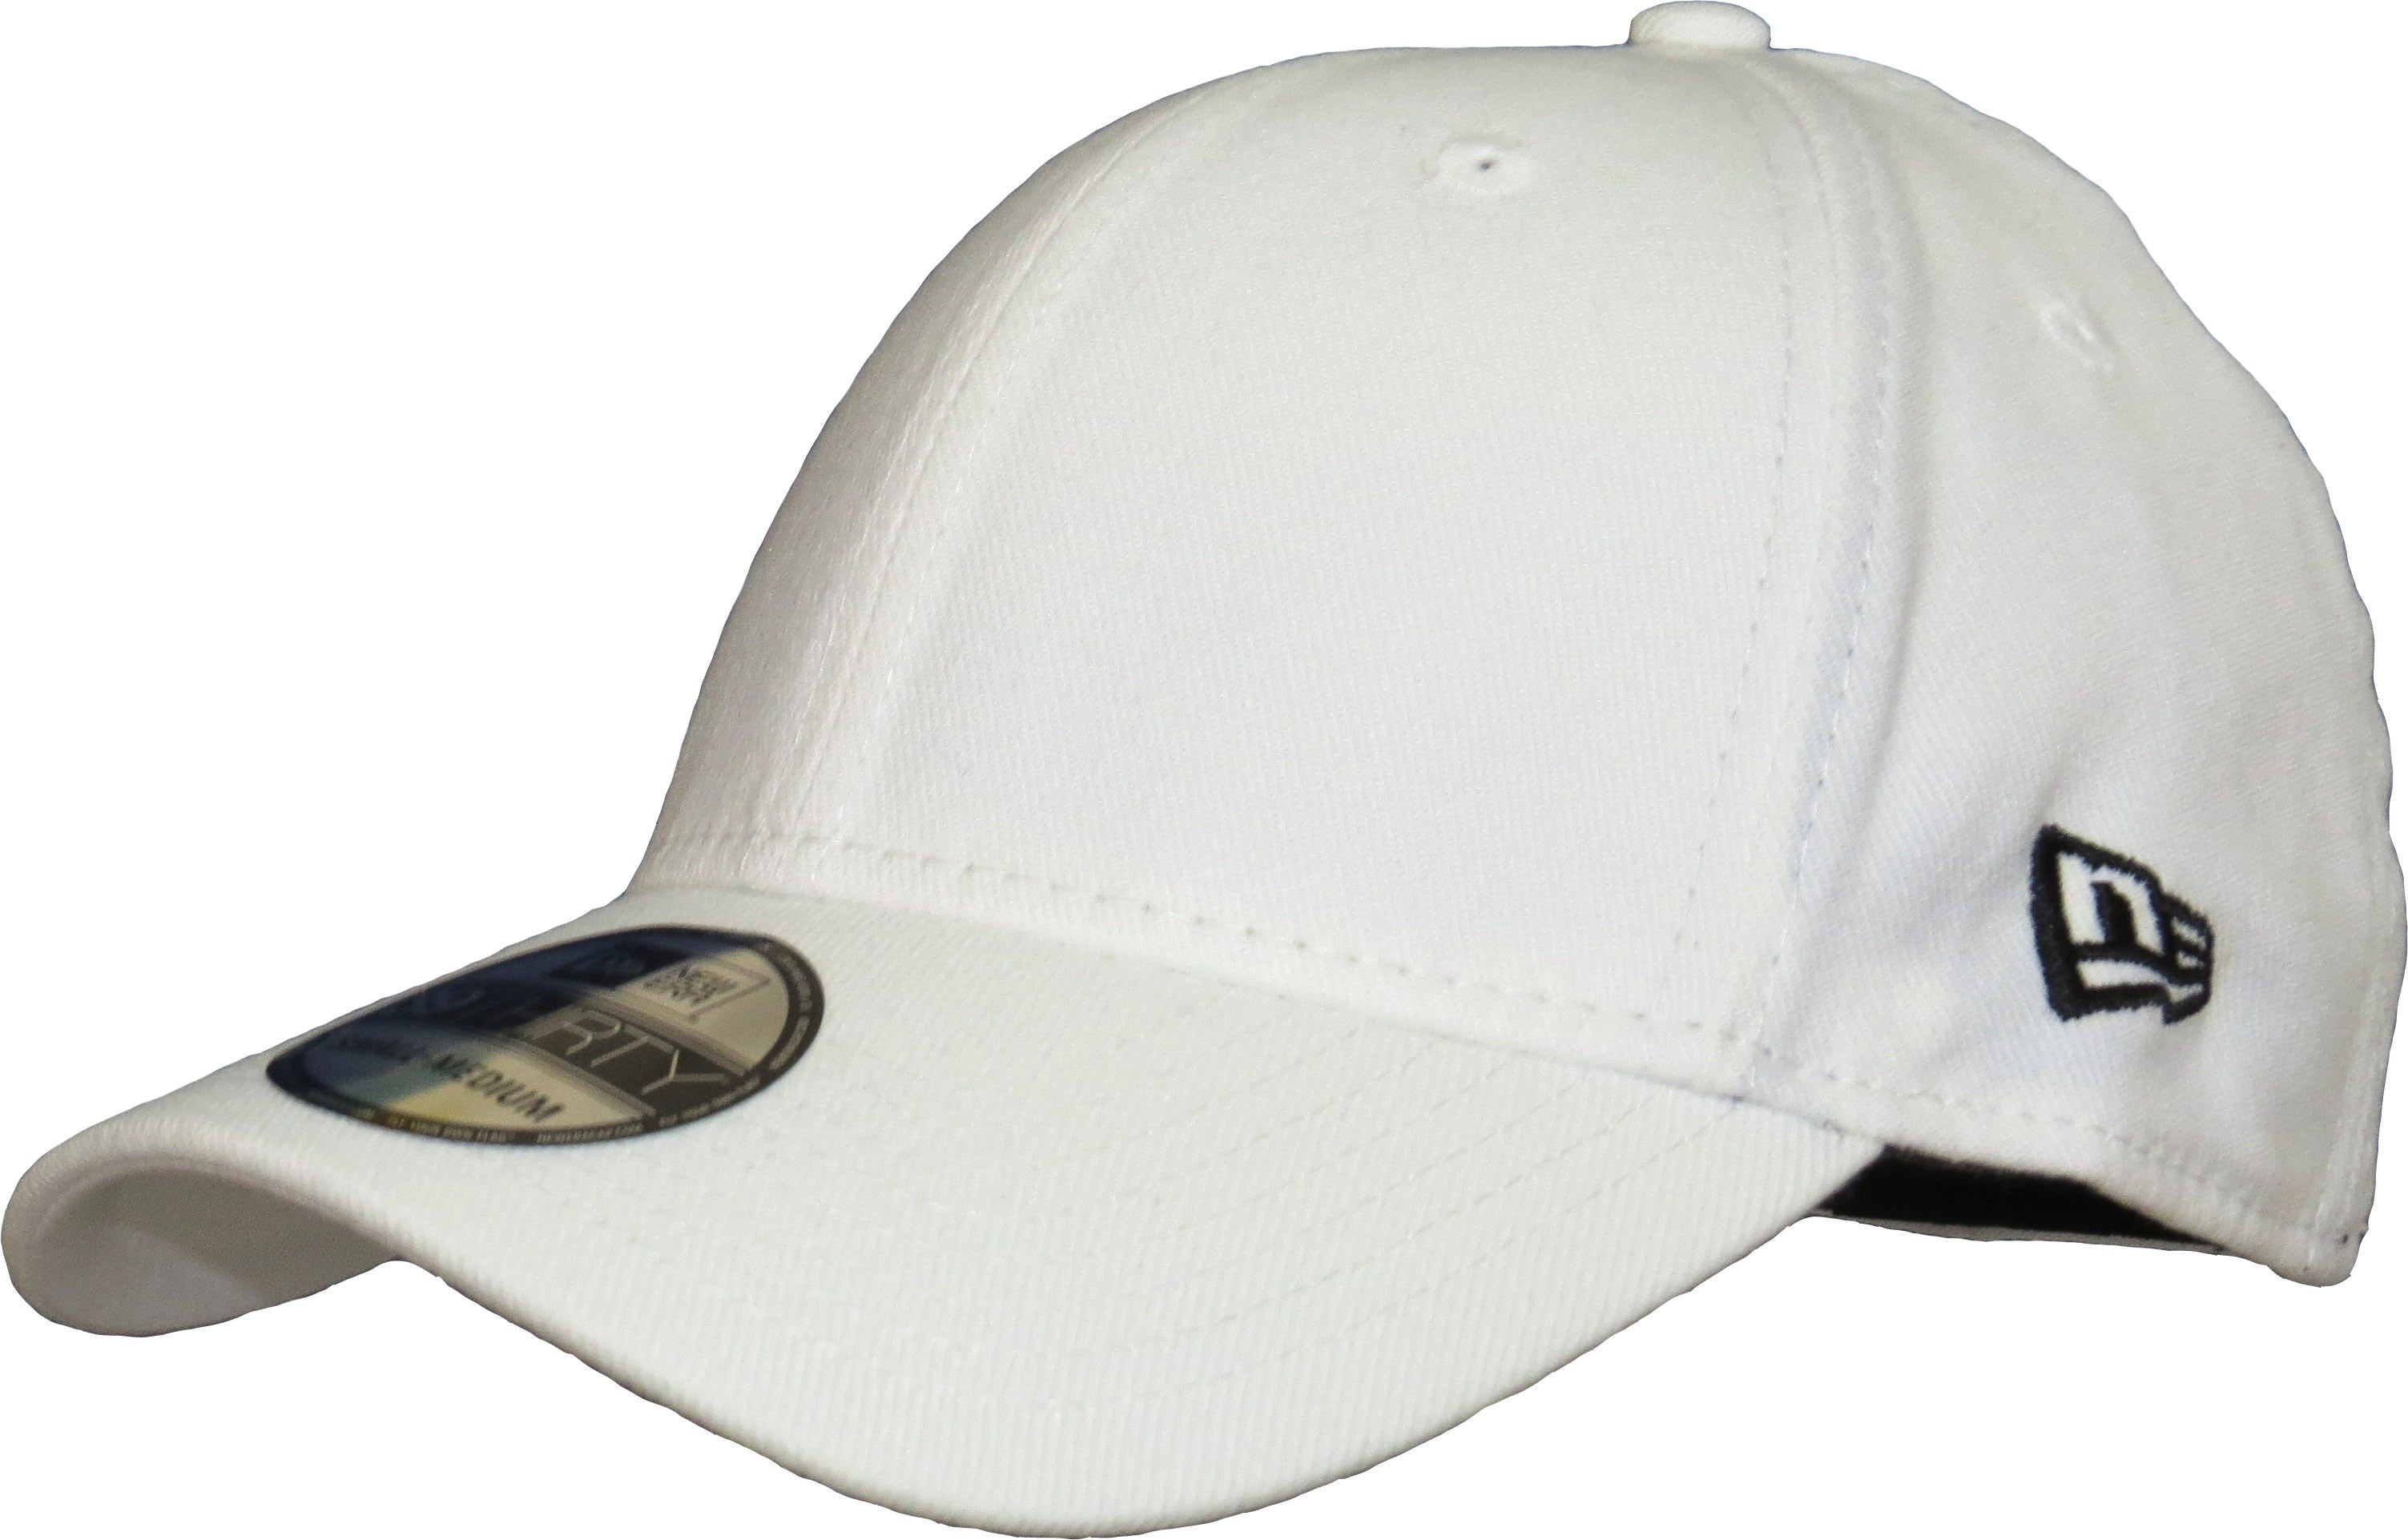 6dbcfc254e3 New Era 3930 Classic Curved Peak Stretch Fit Plain White Baseball Cap -  pumpheadgear